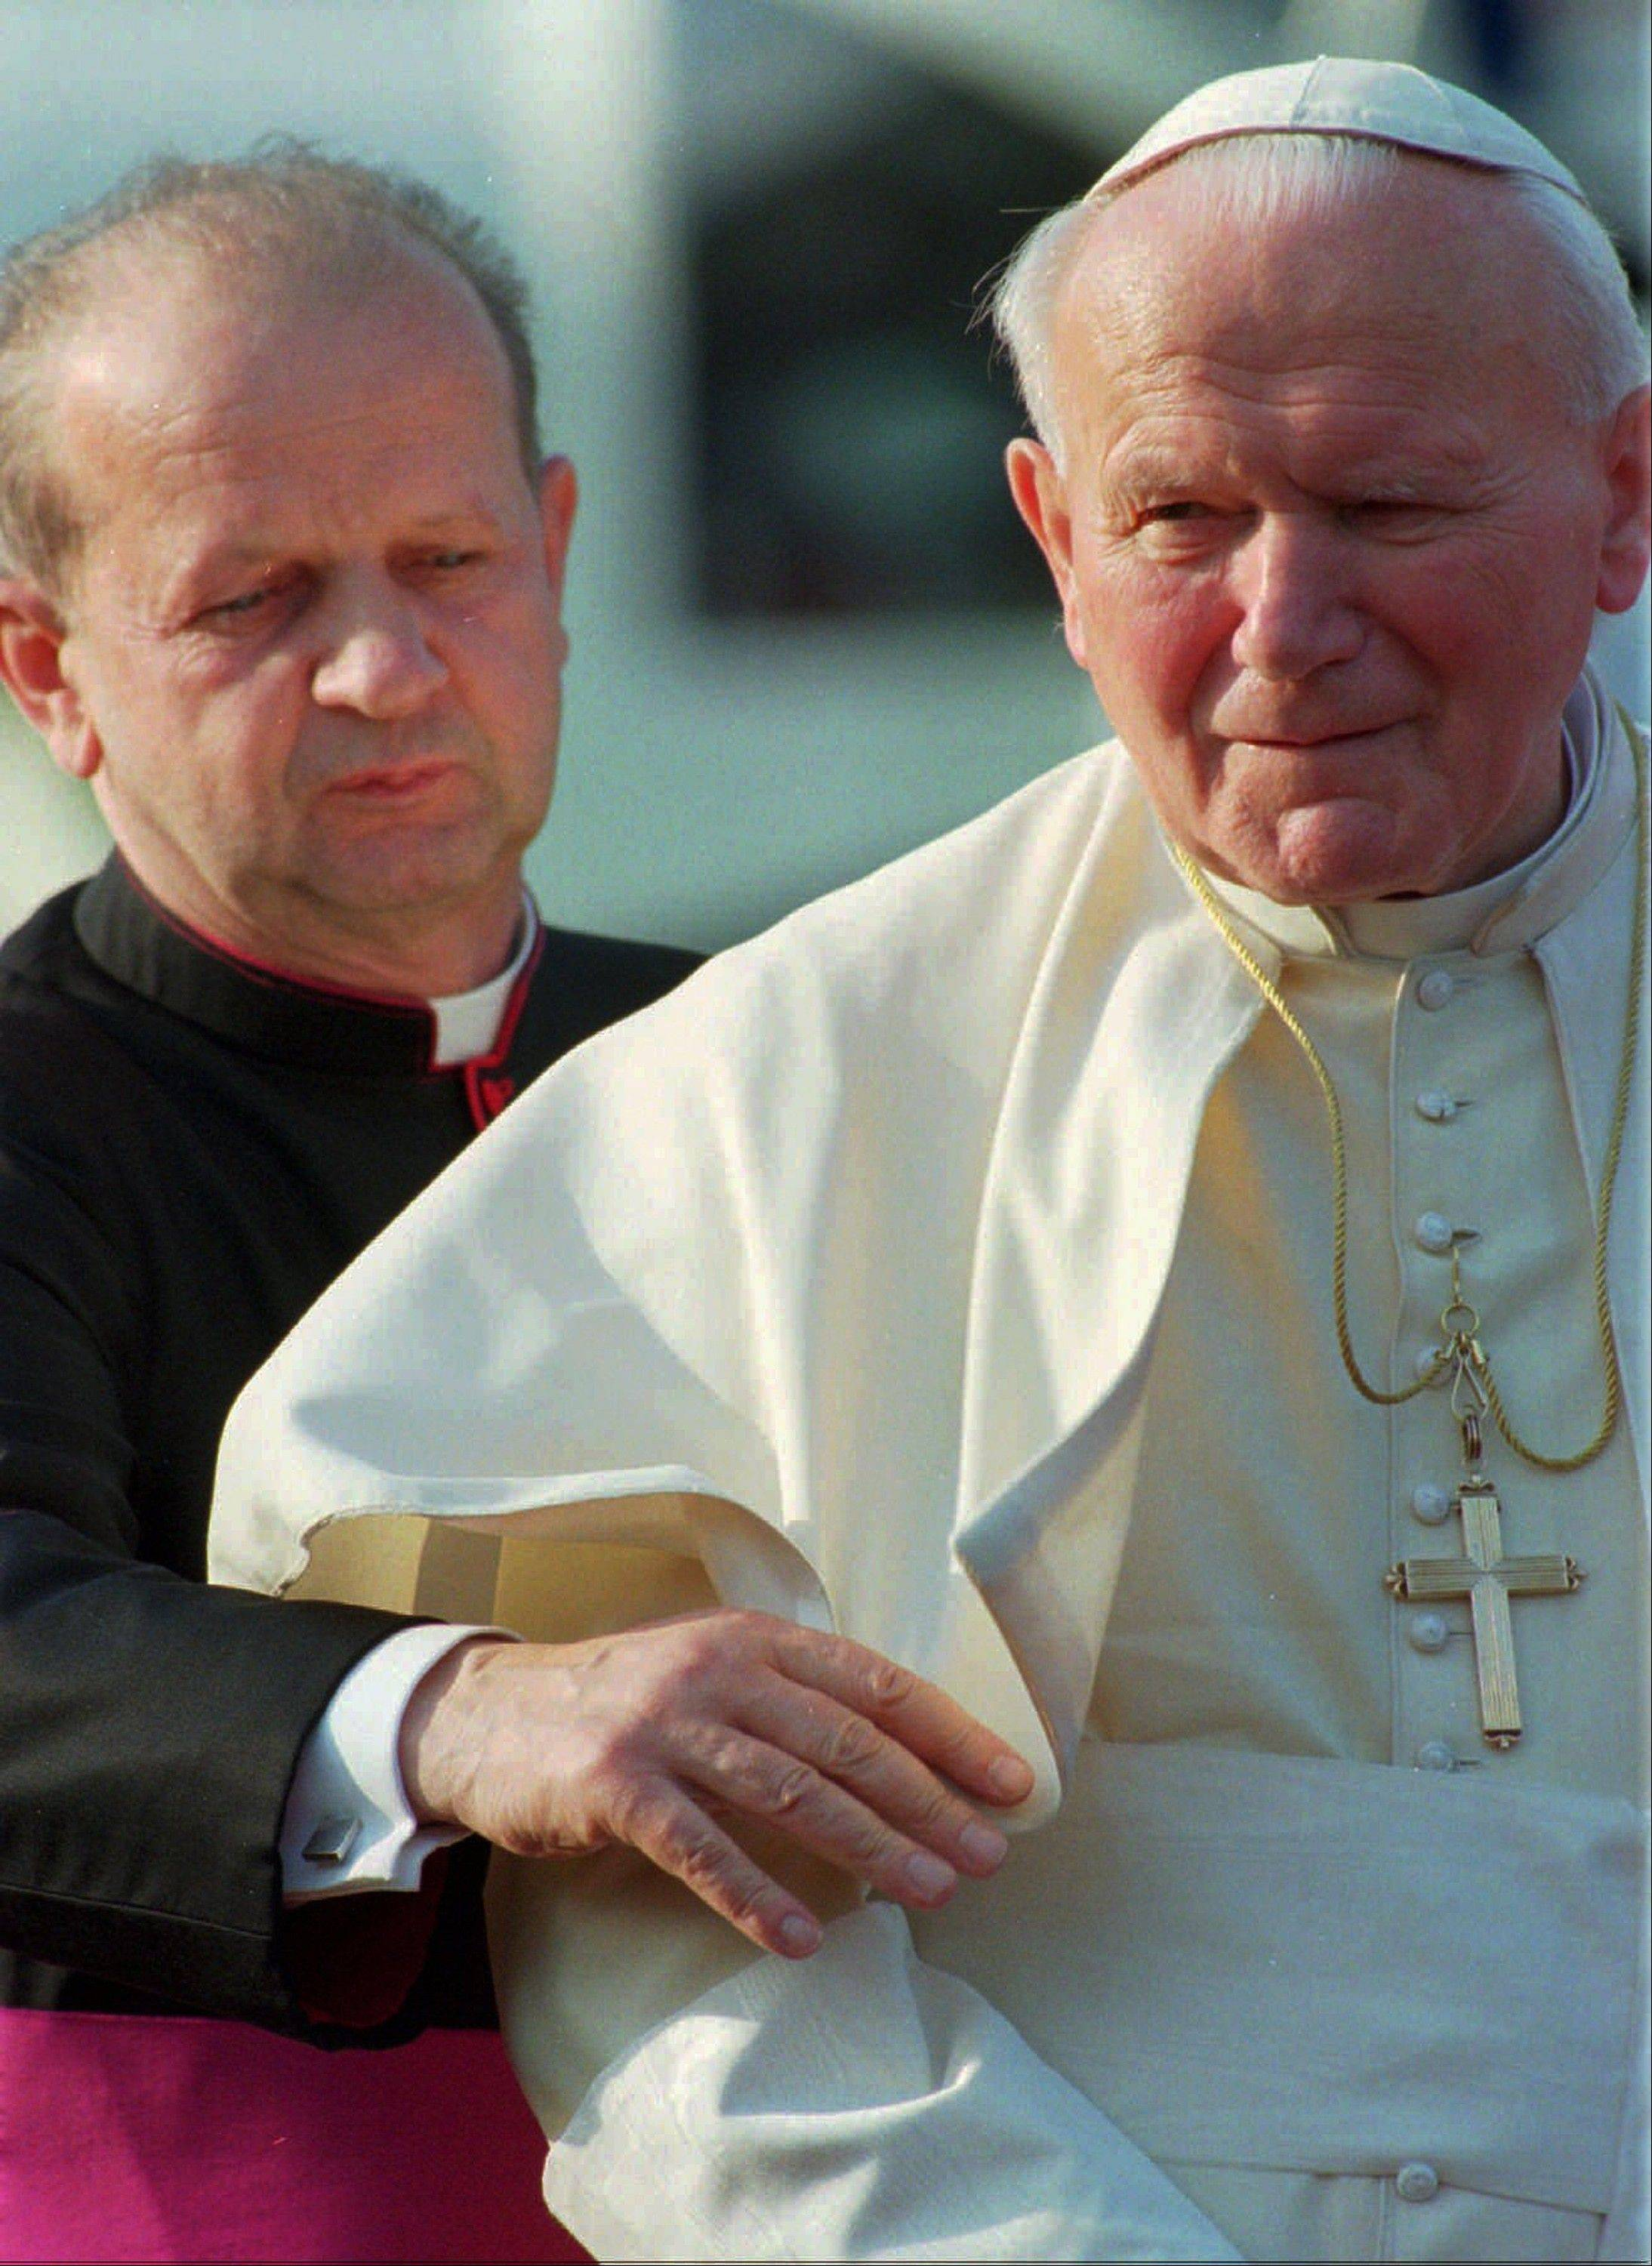 Poles are divided between praise and condemnation of Pope John Paul II�s personal secretary Stanislaw Dziwisz over publishing the beloved pontiff�s personal notes against his last will and testament.